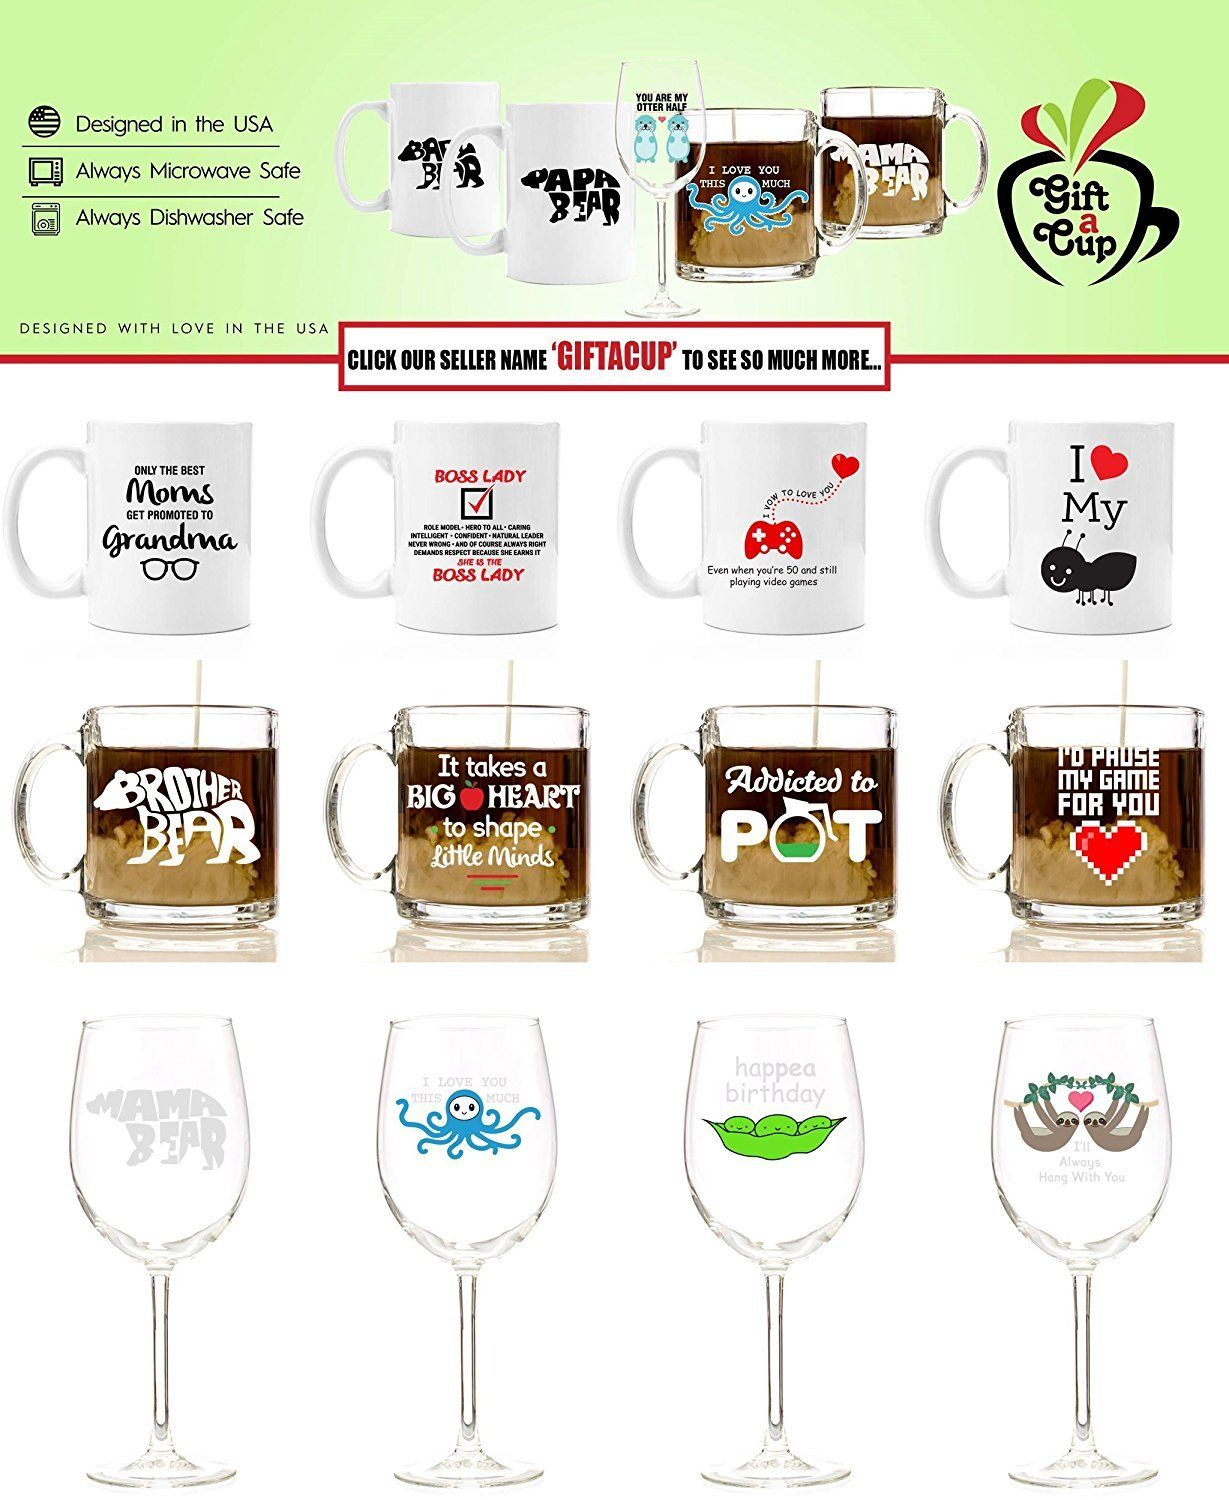 Im Not 40 25 With 15 Years Experience Premium 14oz Wine Glass Gift 40th Birthday Gifts For Women Men Girls Wife Husband Box Bag Wrap Ideas Gag Funny